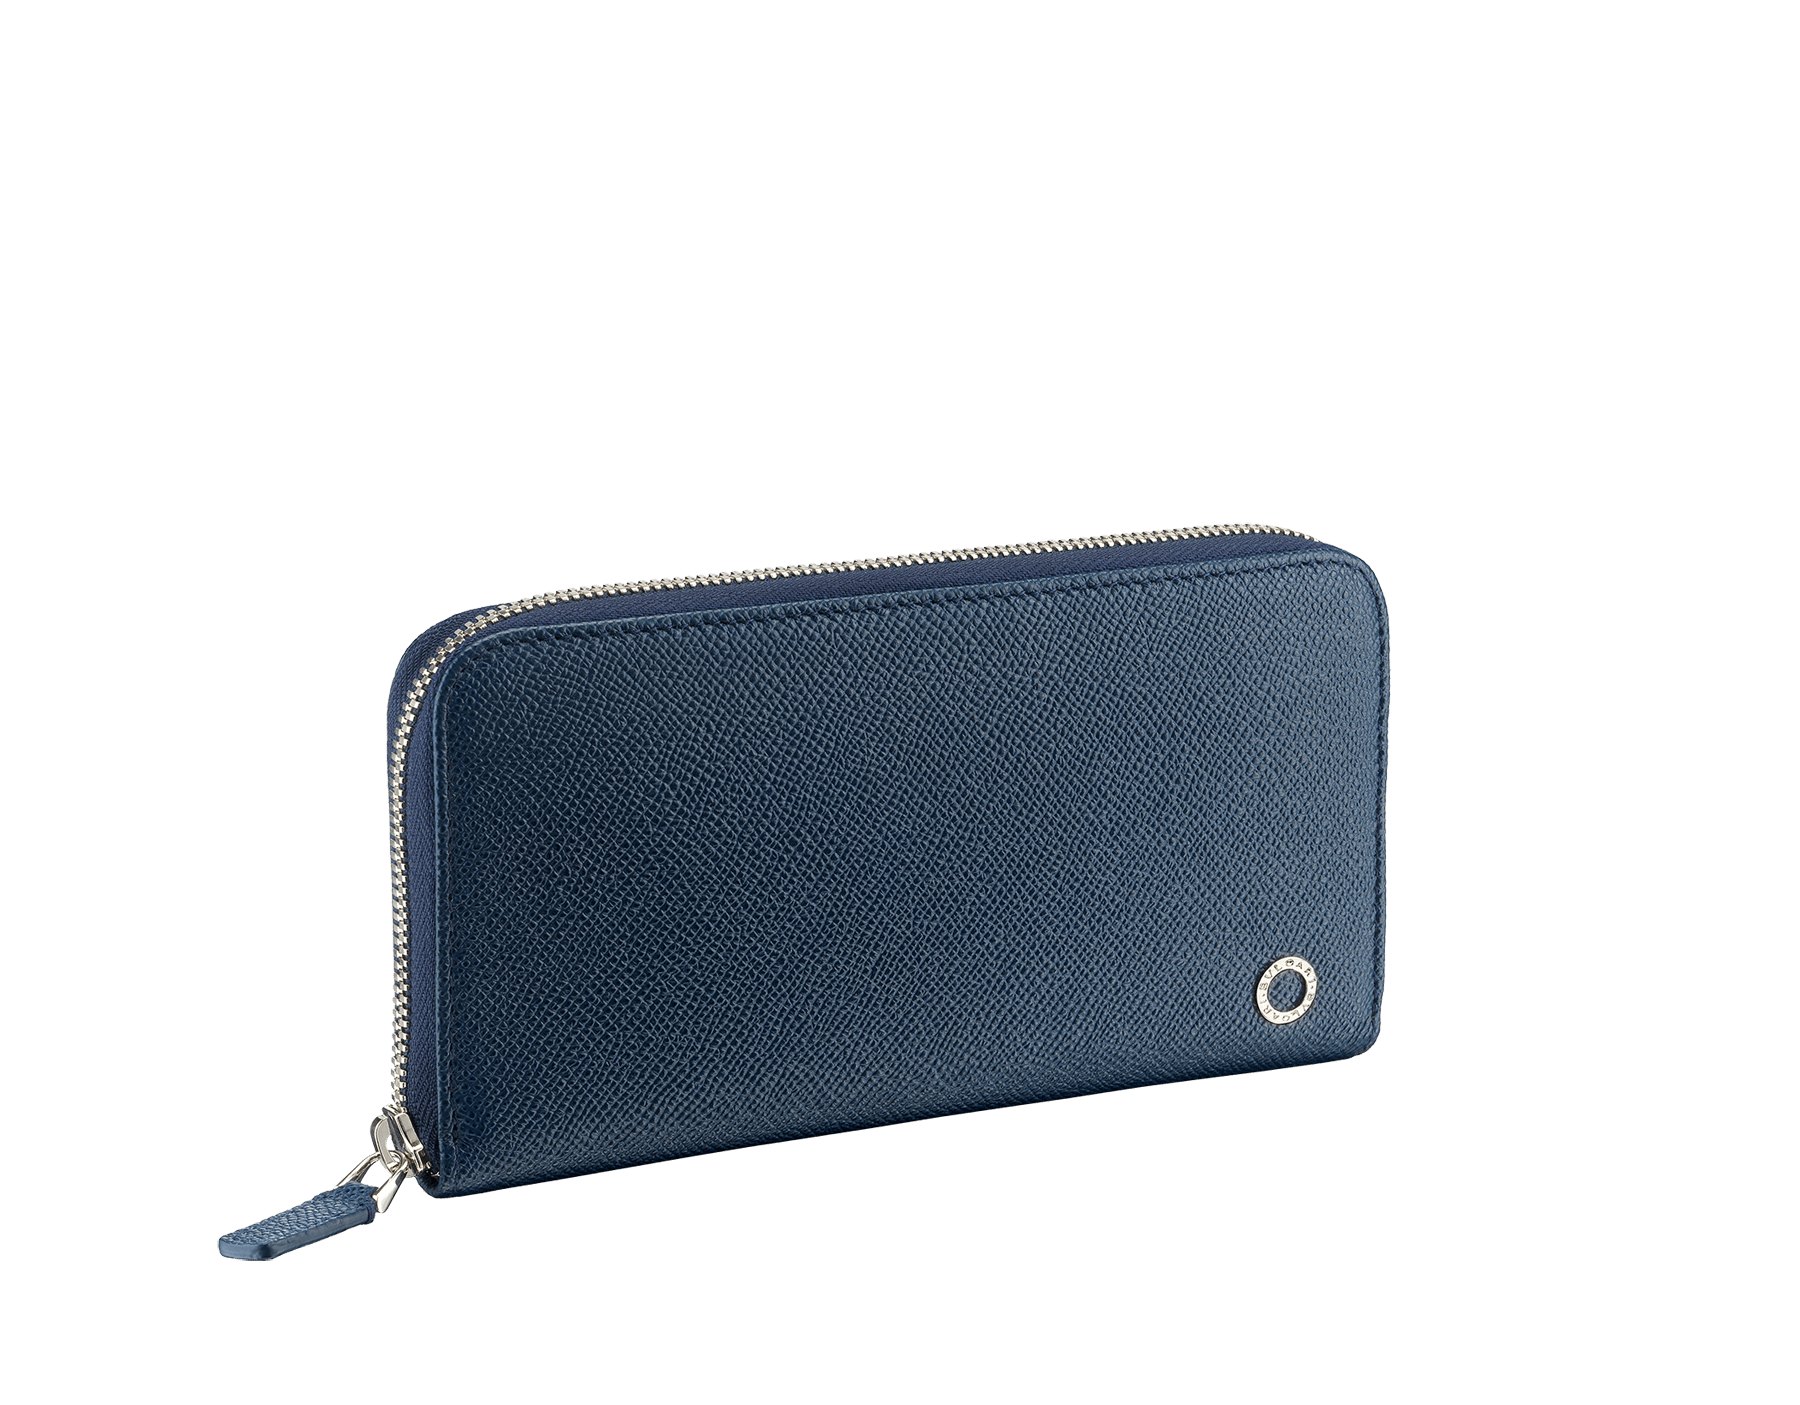 BVLGARI BVLGARI man zipped wallet in denim sapphire and tropical tourquoise grain calf leather and black nappa lining. Iconic logo décor in palladium plated brass. 288254 image 1